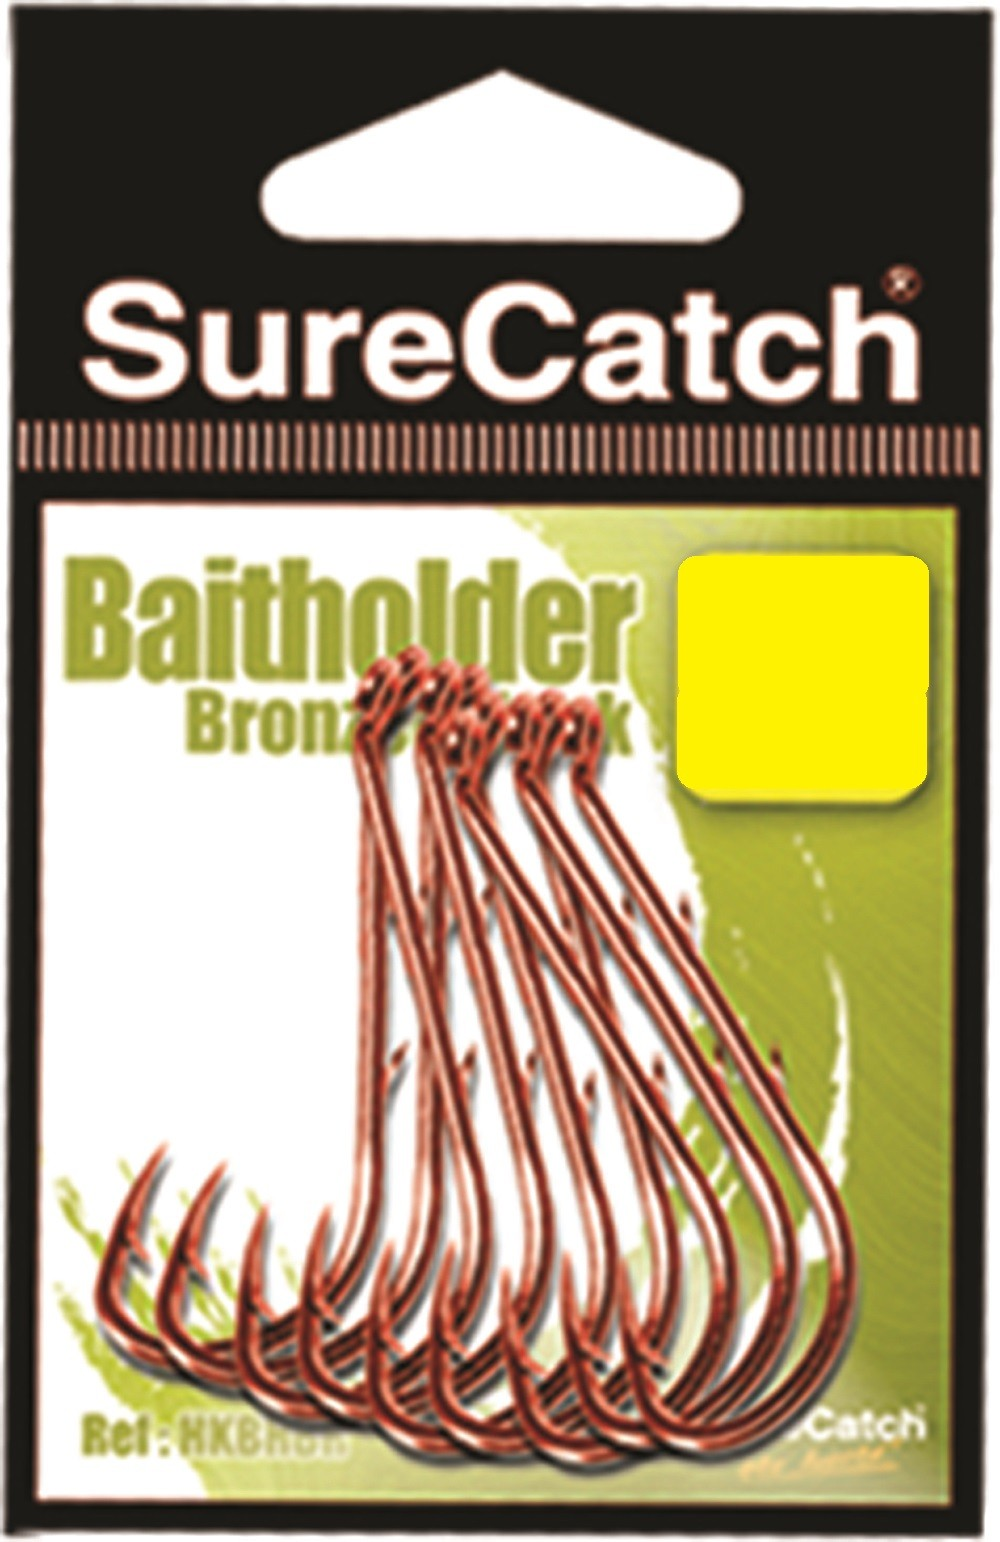 Sure Catch Bronze Baitholder Hook (7 per Pack) - Size 2/0